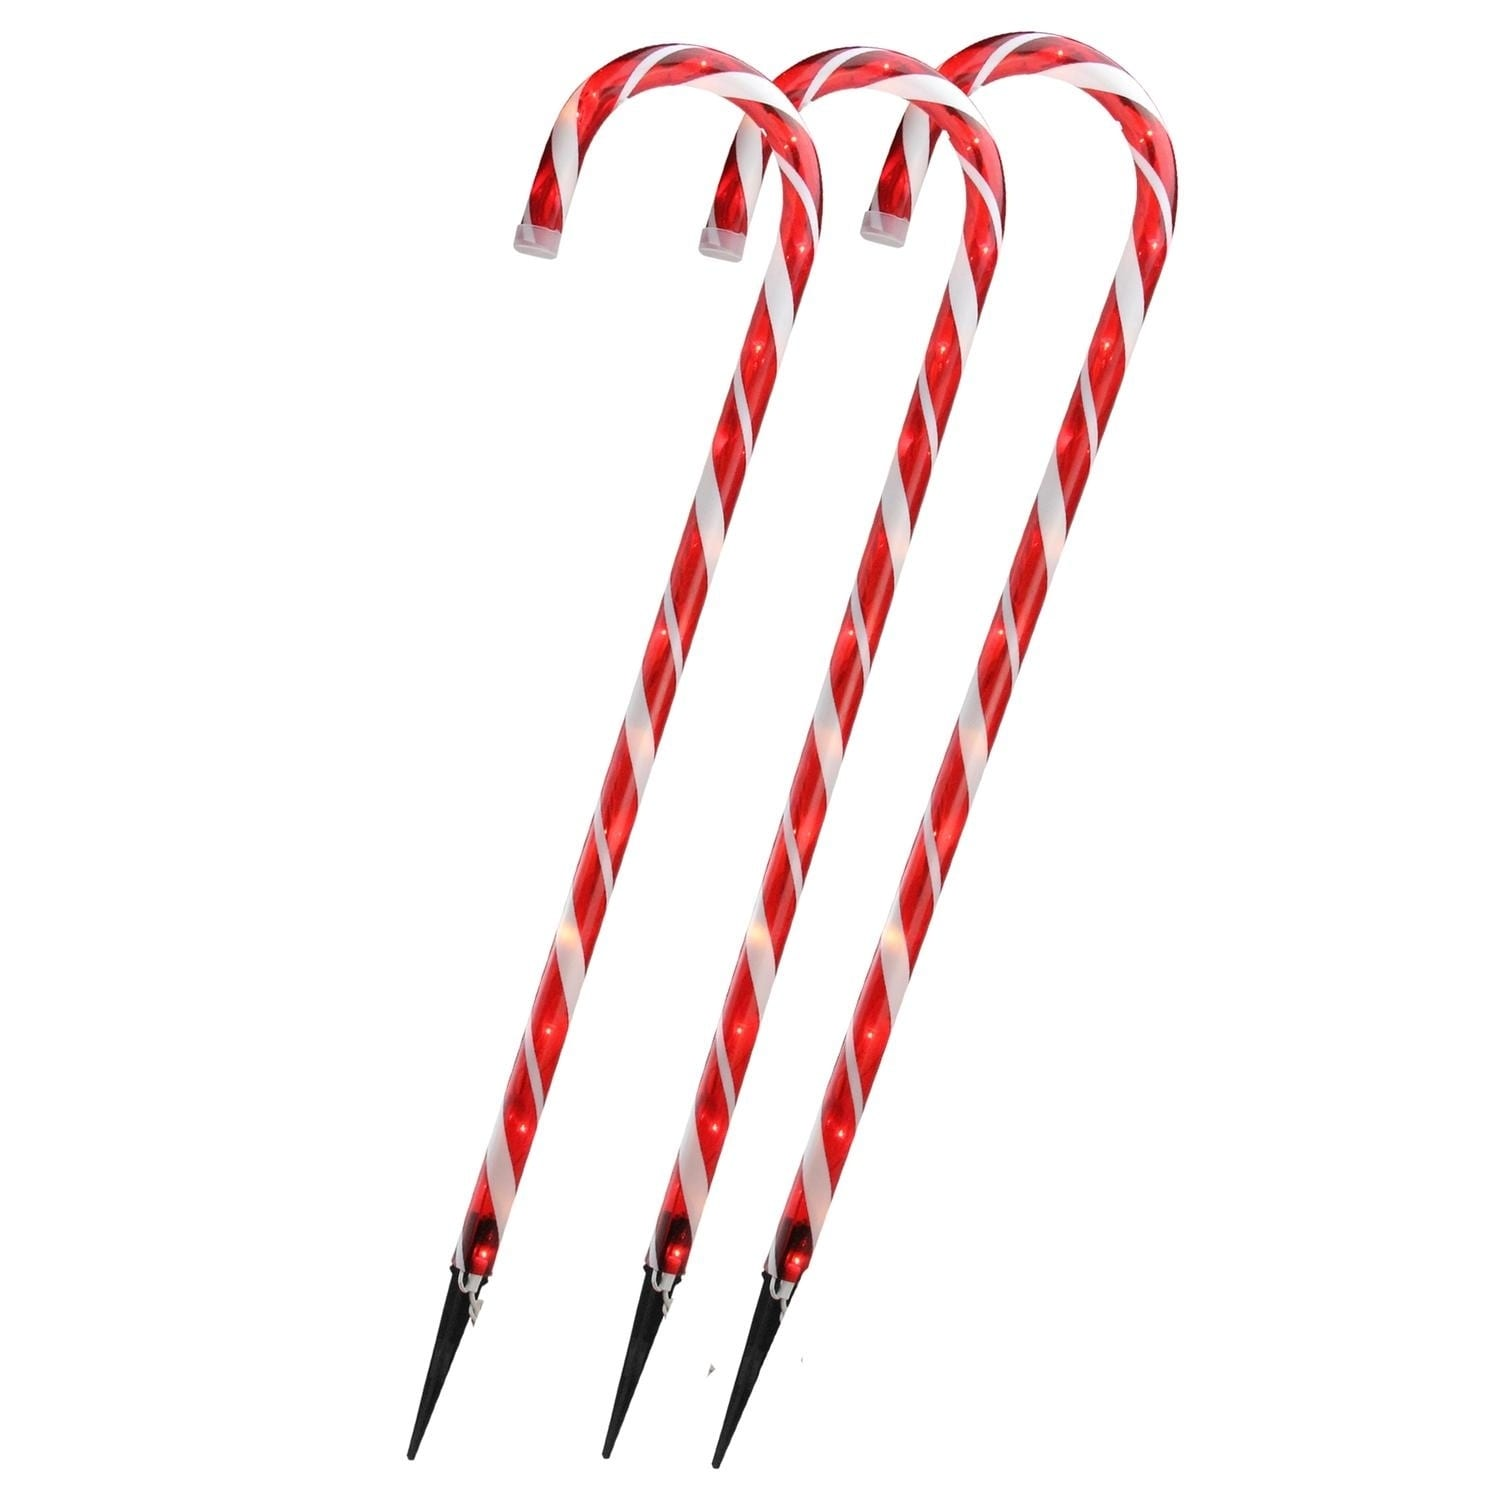 3 Lighted Candy Cane Christmas Yard Decoartions, Red (Pla...